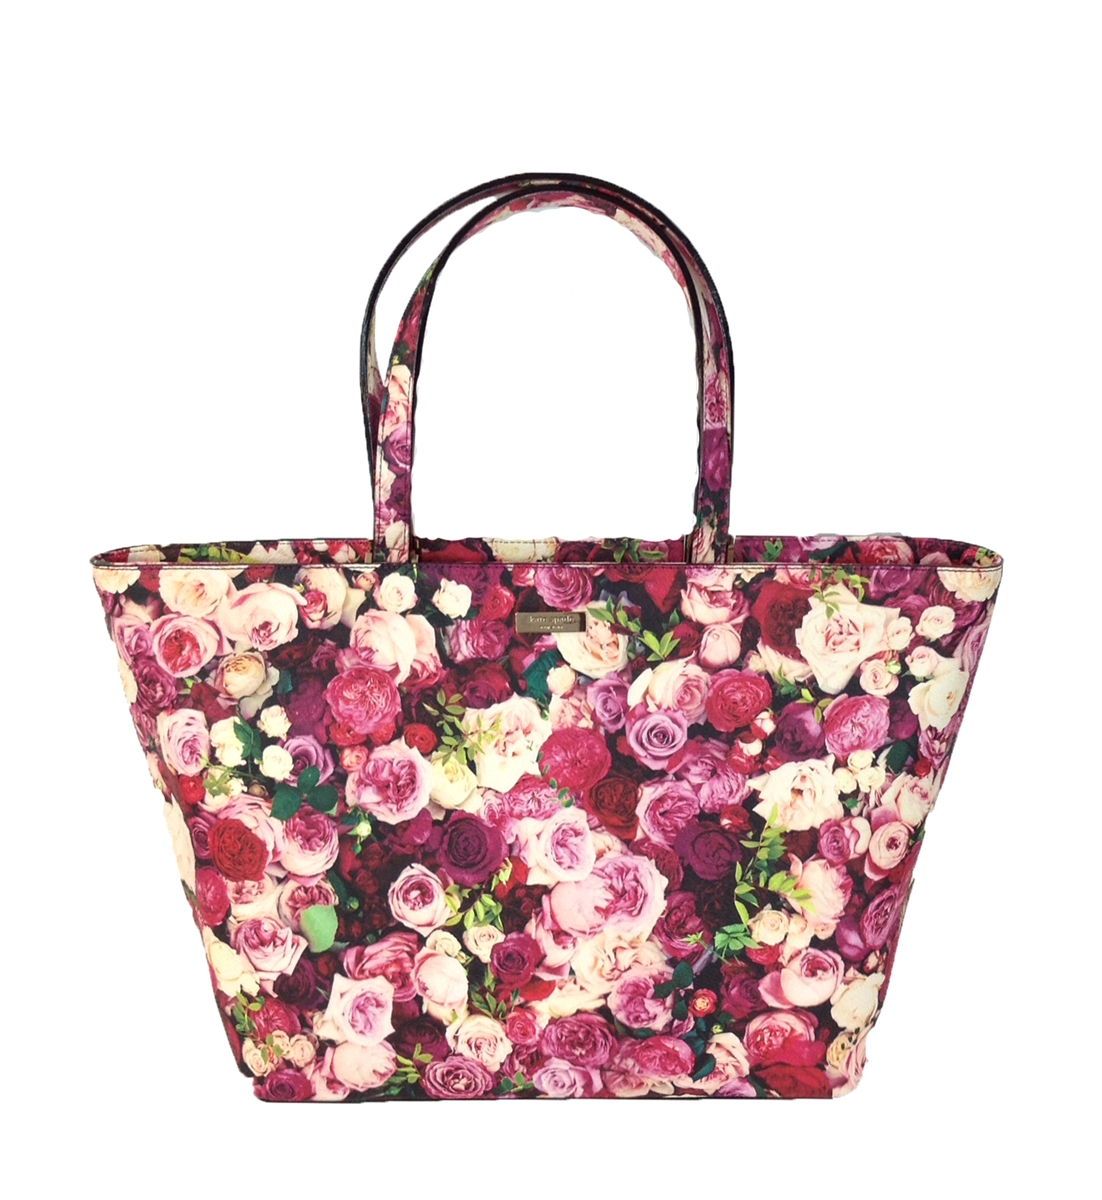 Kate Spade Grant Street Jules Floral Tote Bag, Photo Rose